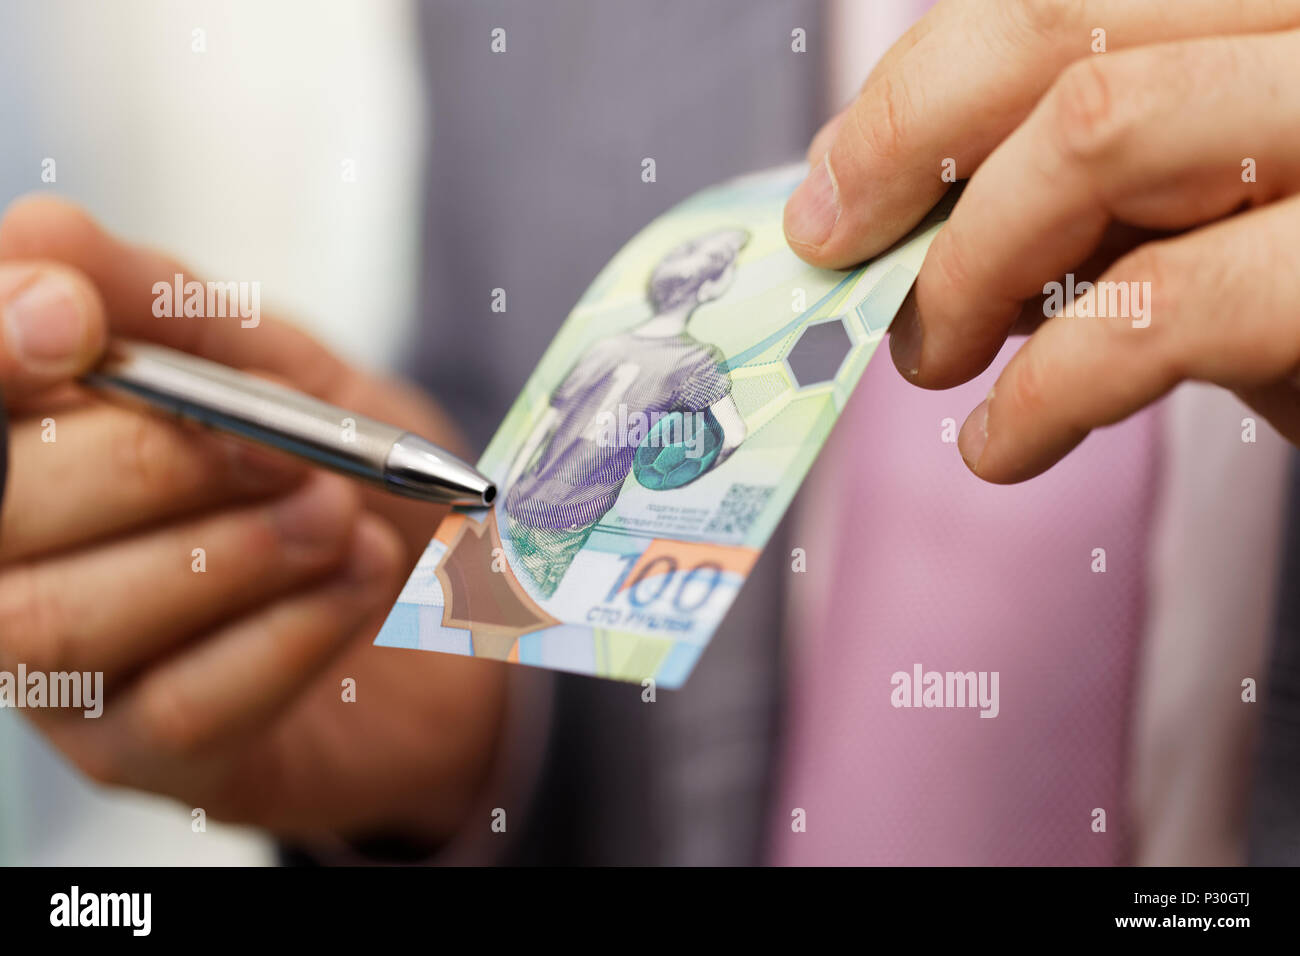 St. Petersburg, Russia - May 23, 2018: General director of JSC Goznak Arkady Trachuk shows the commemorative banknote for FIFA World Cup Russia 2018 e - Stock Image